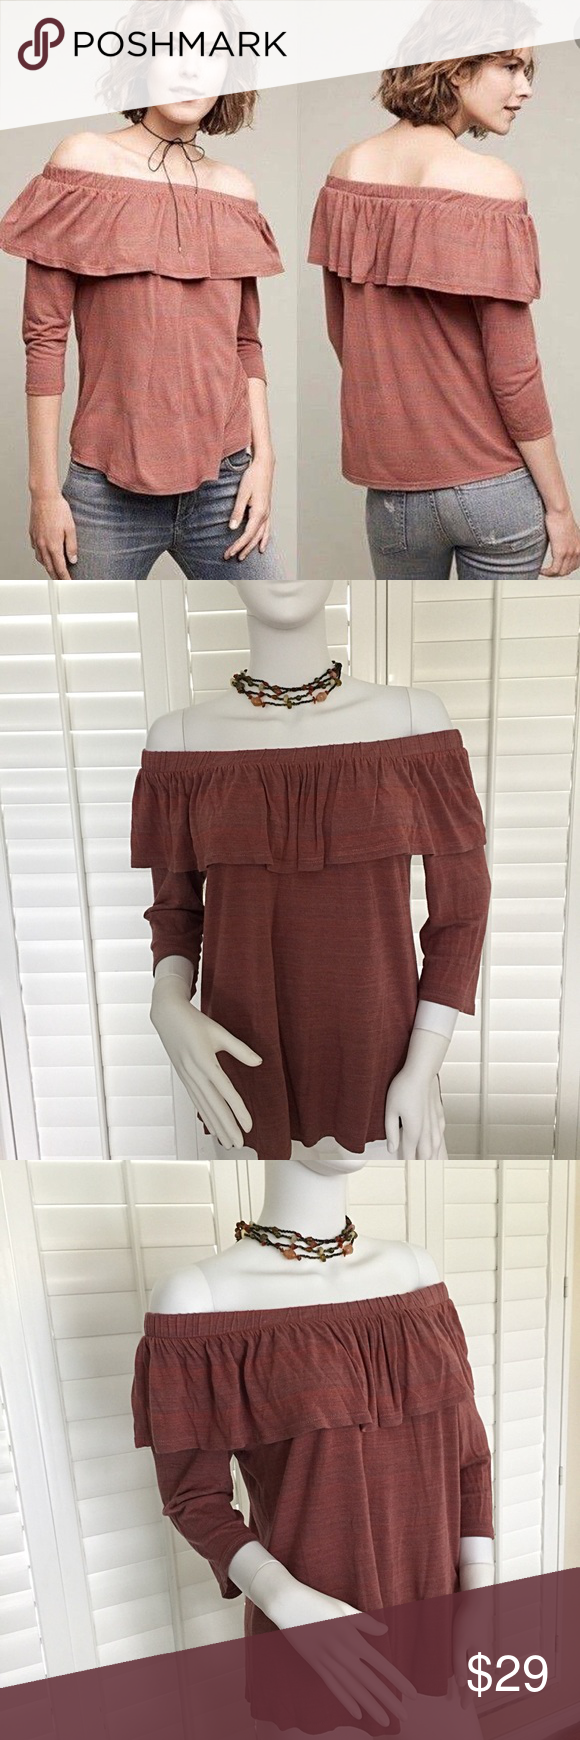 f77a14f84073e Dolan Left Coast Charla Off Shoulder Top Size Med From Anthropologie ...